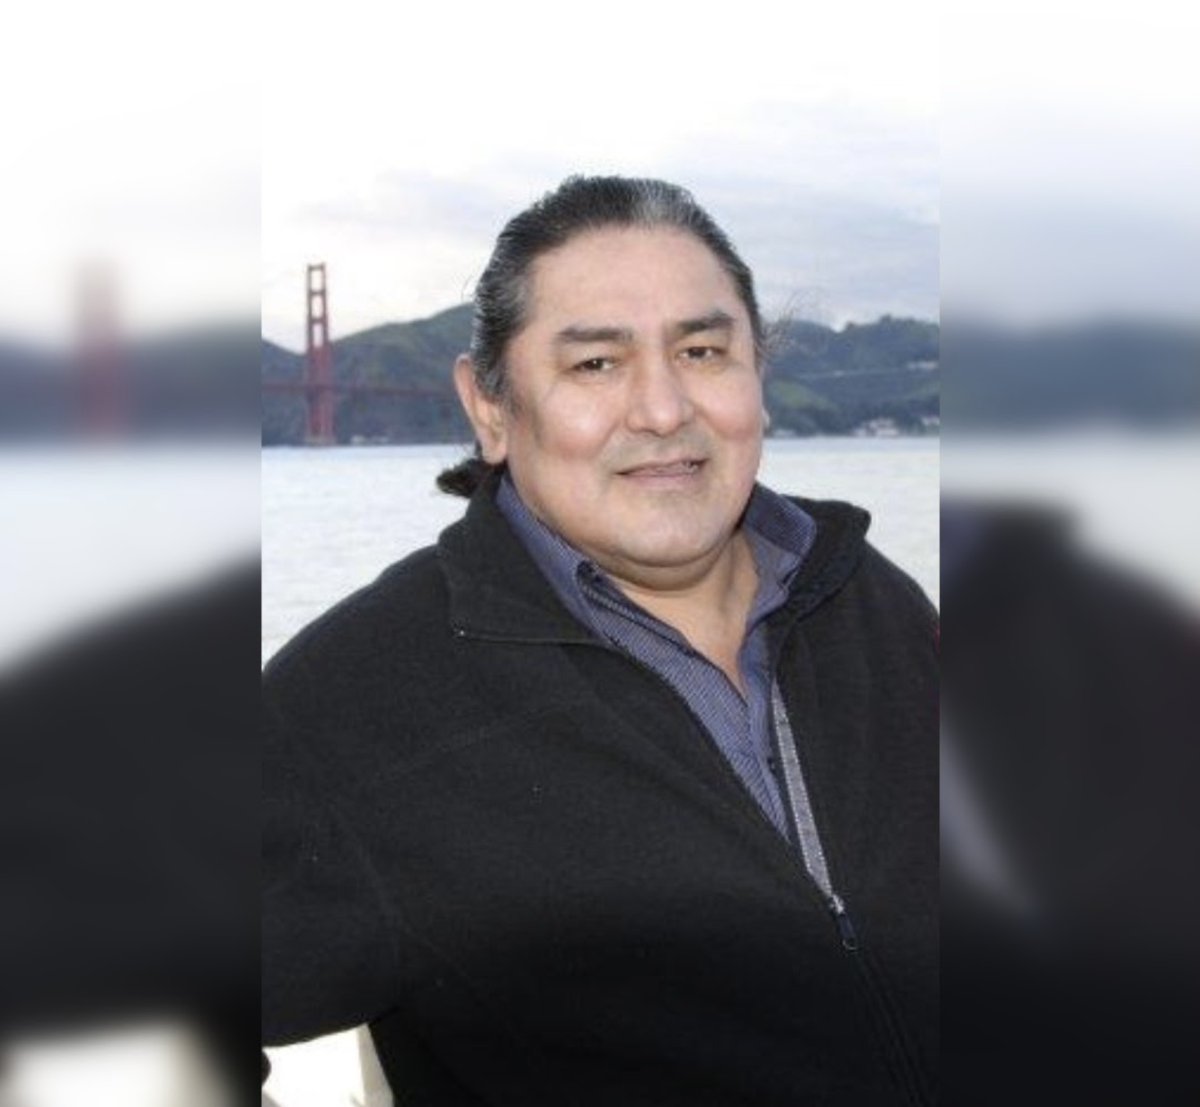 Robert Begay, 63, died from COVID-19. (Photo Courtesy of Faith Begay-Dominique)